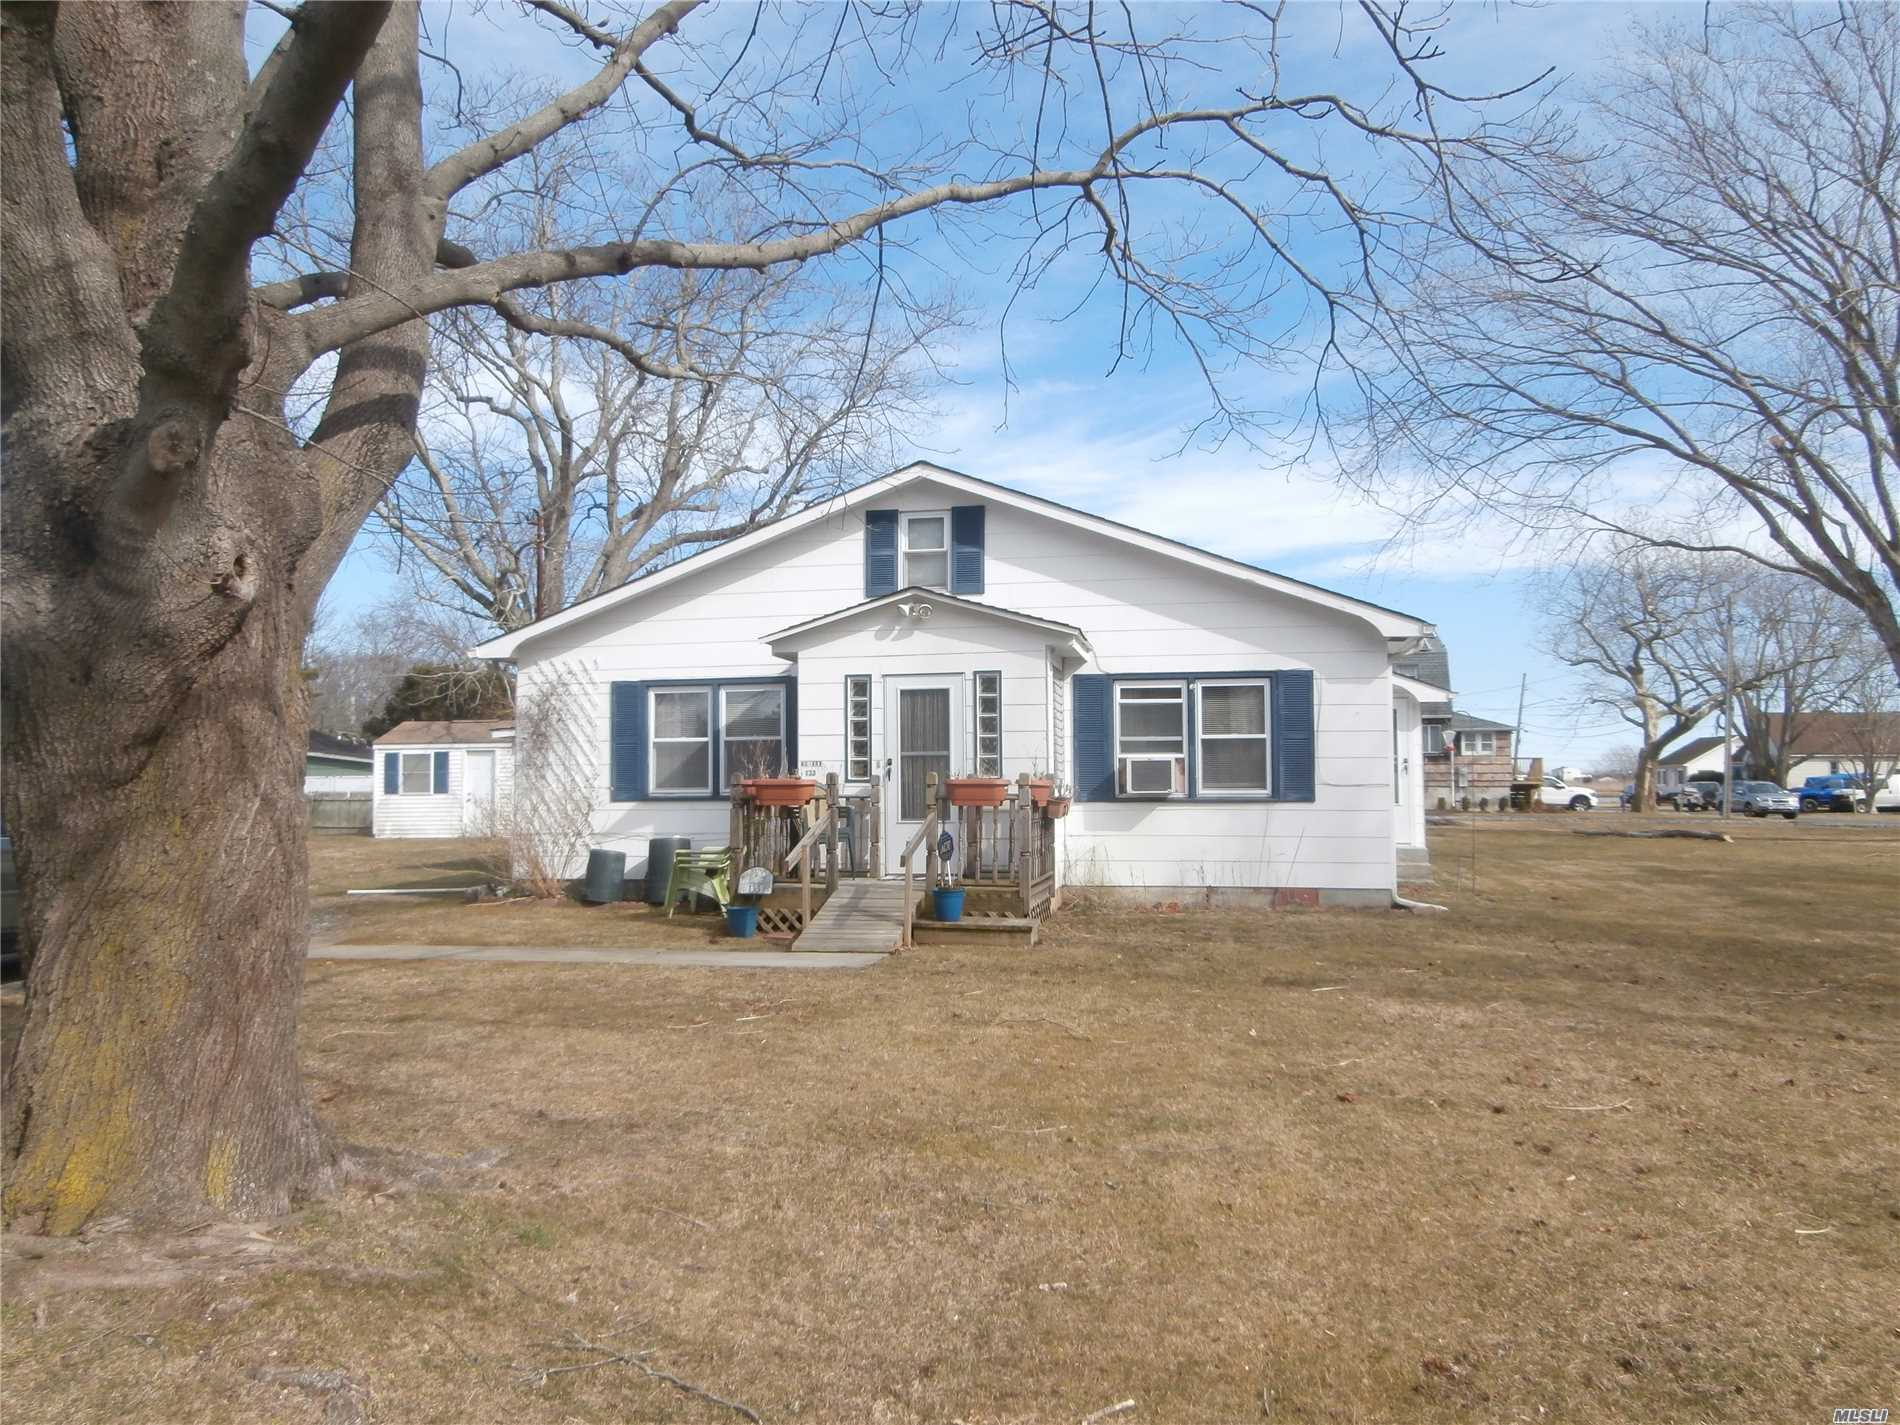 2 Bedrooms/1 Bathroom Ranch Situated On 100X100 Corner Property. Many Possibilities - Year Round Living Or Summer/Weekend Get-A-Way Or Great Investment Property. Low Taxes. William Floyd School District.